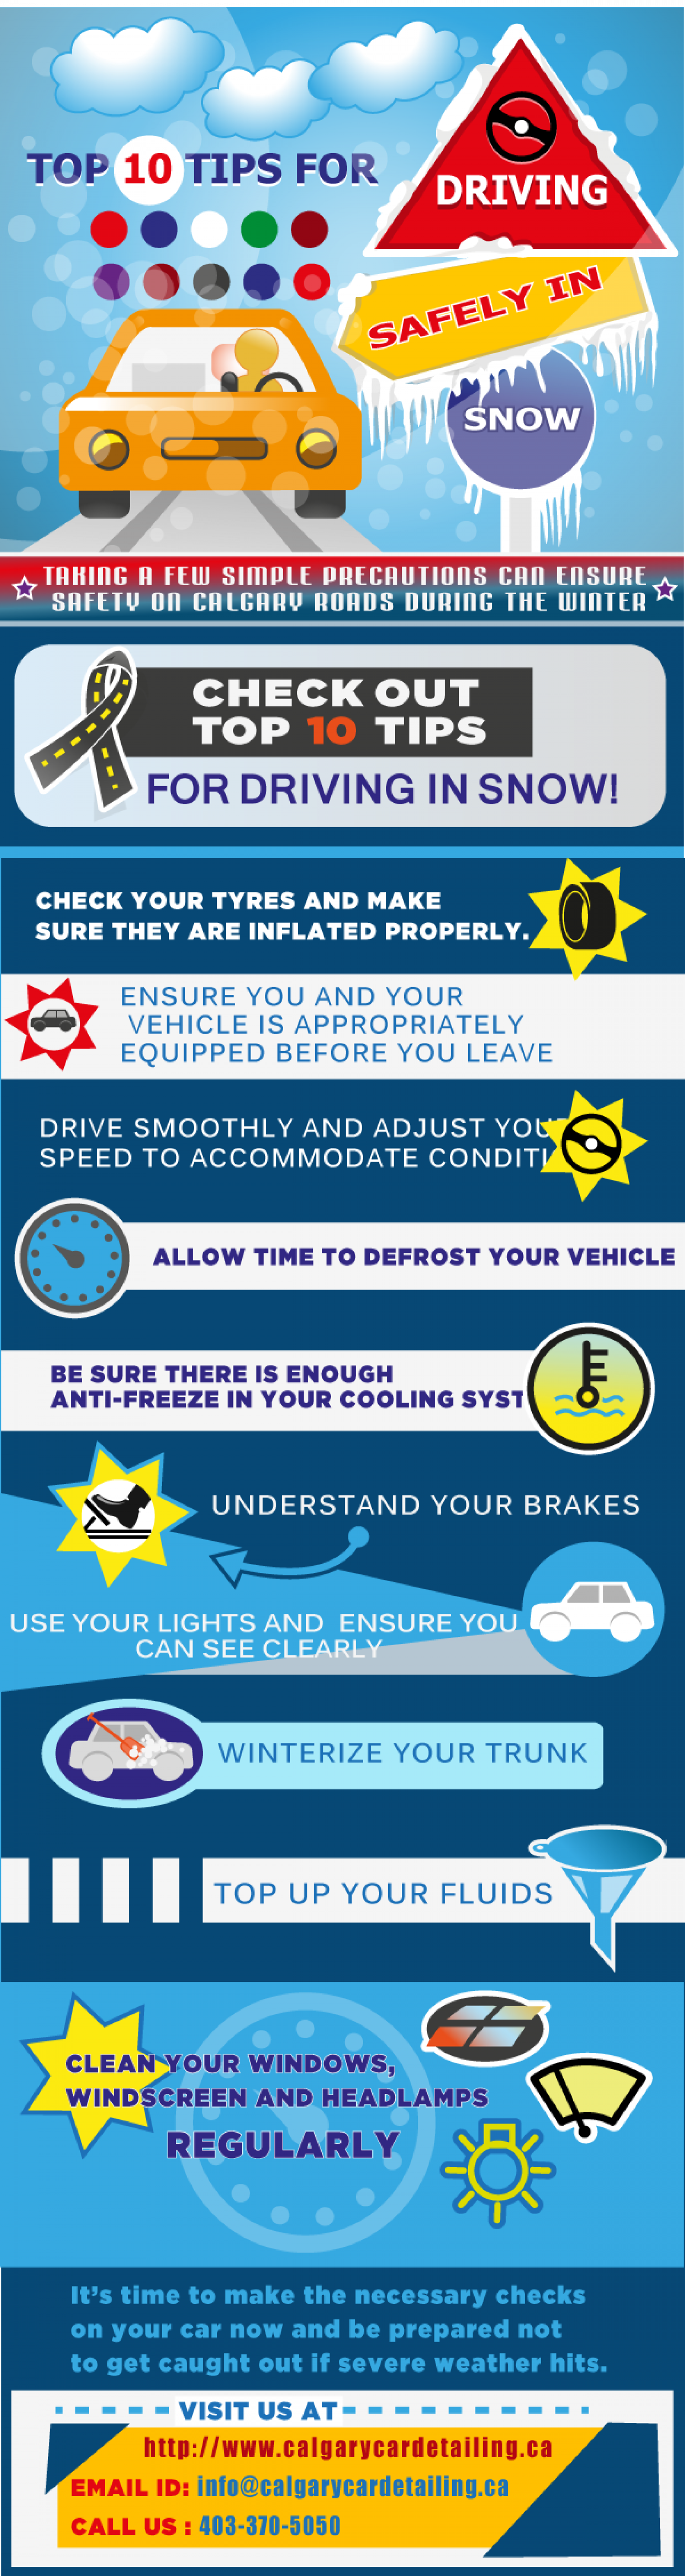 Top 10 Tips for Driving Safely in Snow Infographic